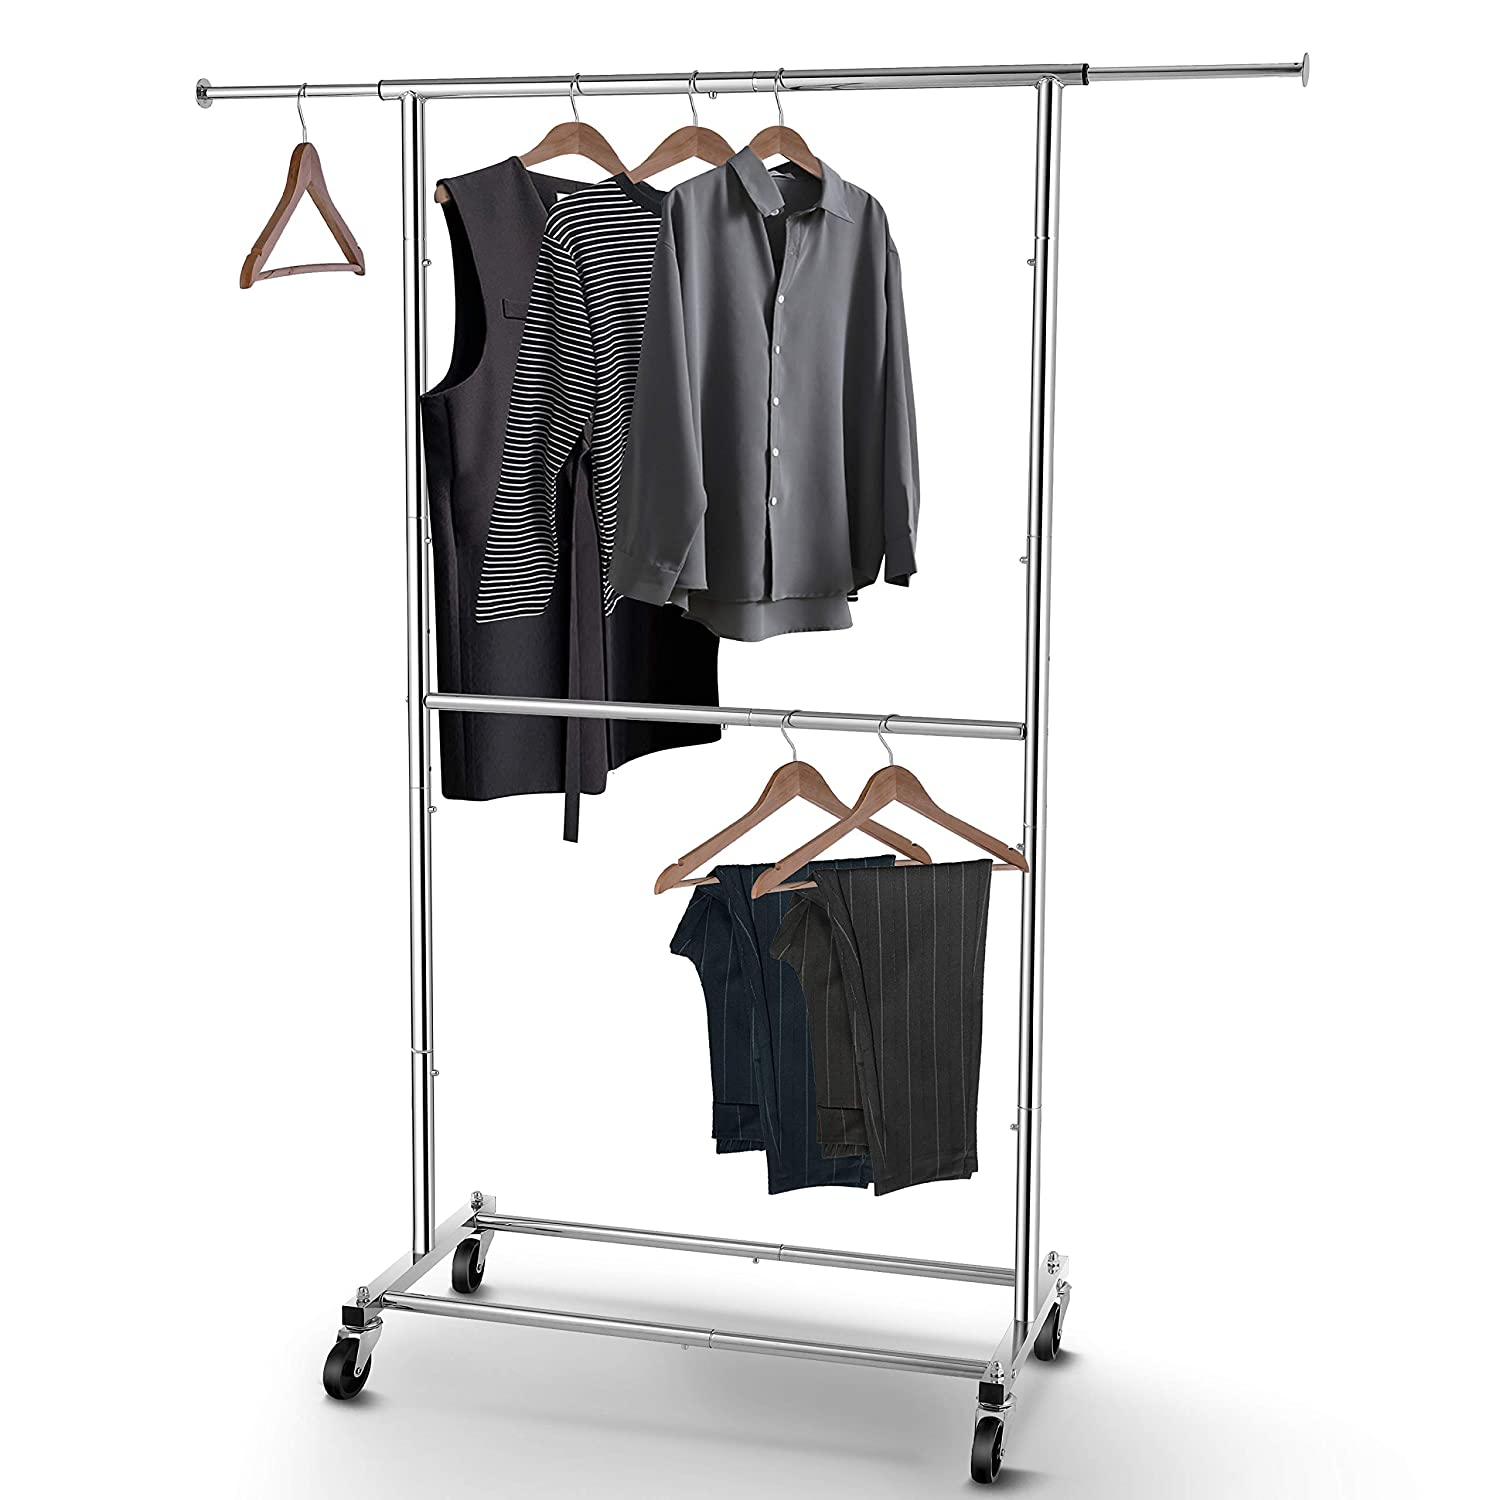 Simple Trending Double Rod Clothing Garment Rack, Rolling Clothes Organizer on Wheels for Hanging Clothes, Chrome